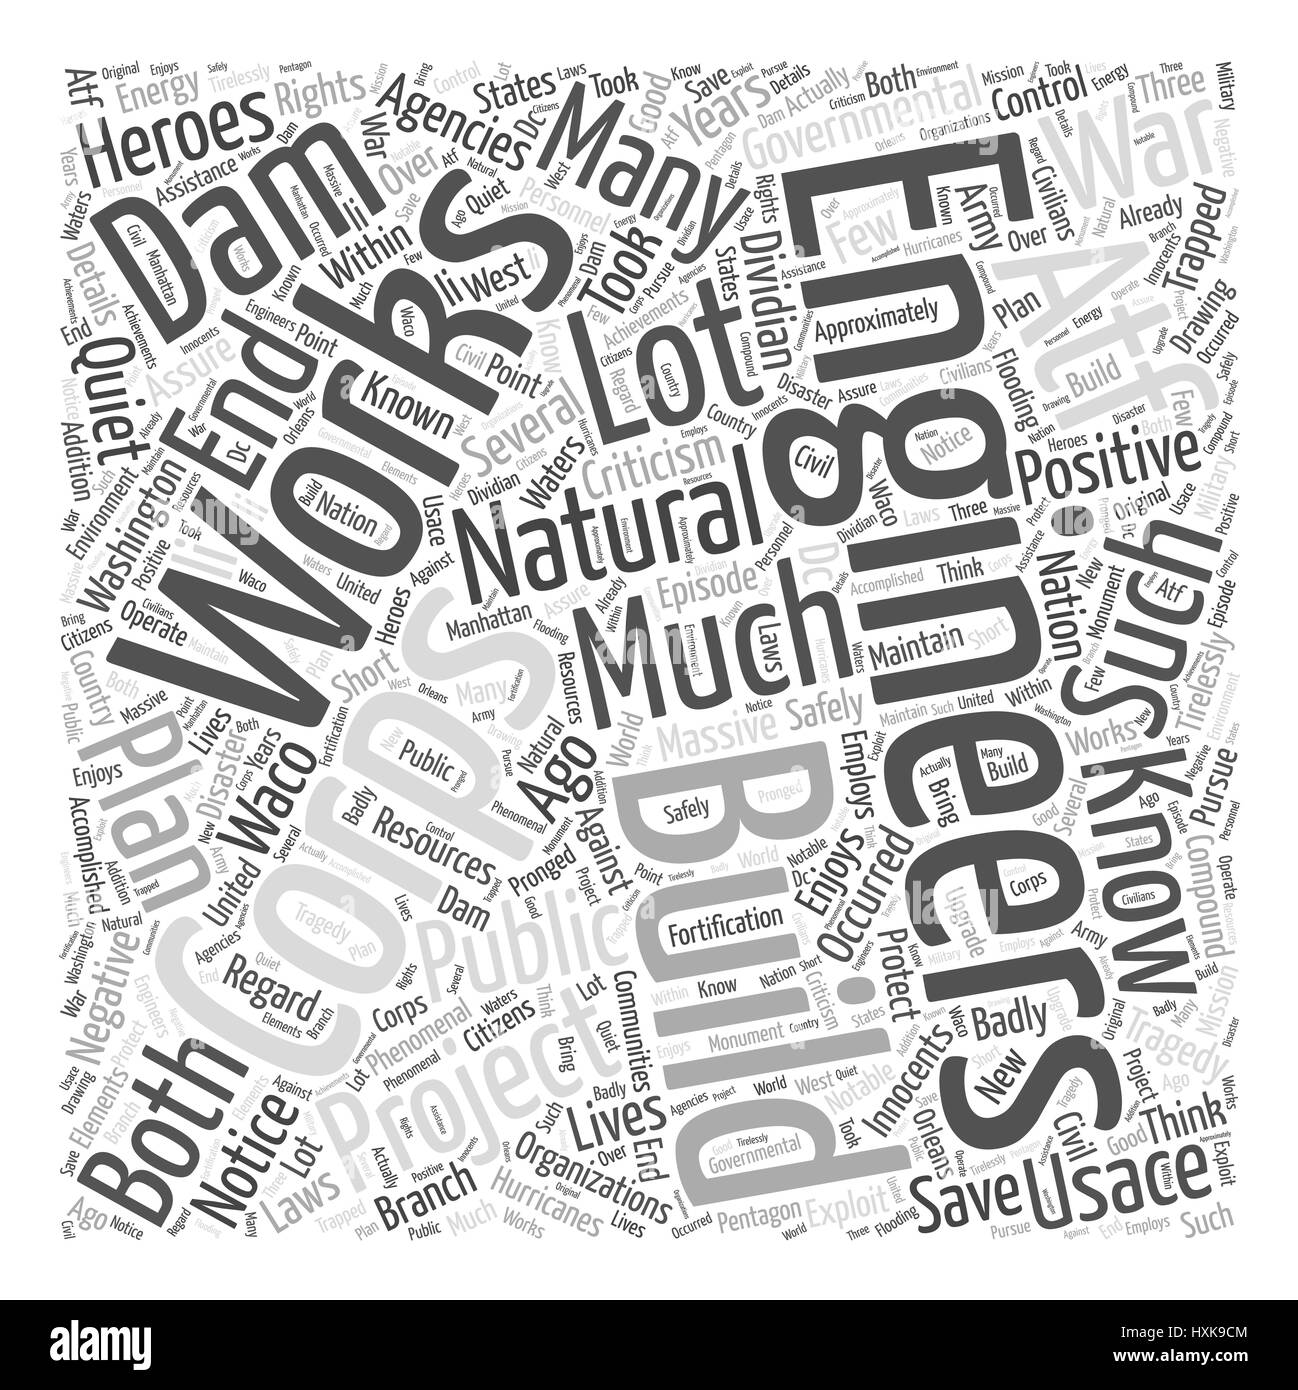 The Quiet Heroes The Corps of Engineers Word Cloud Concept - Stock Image